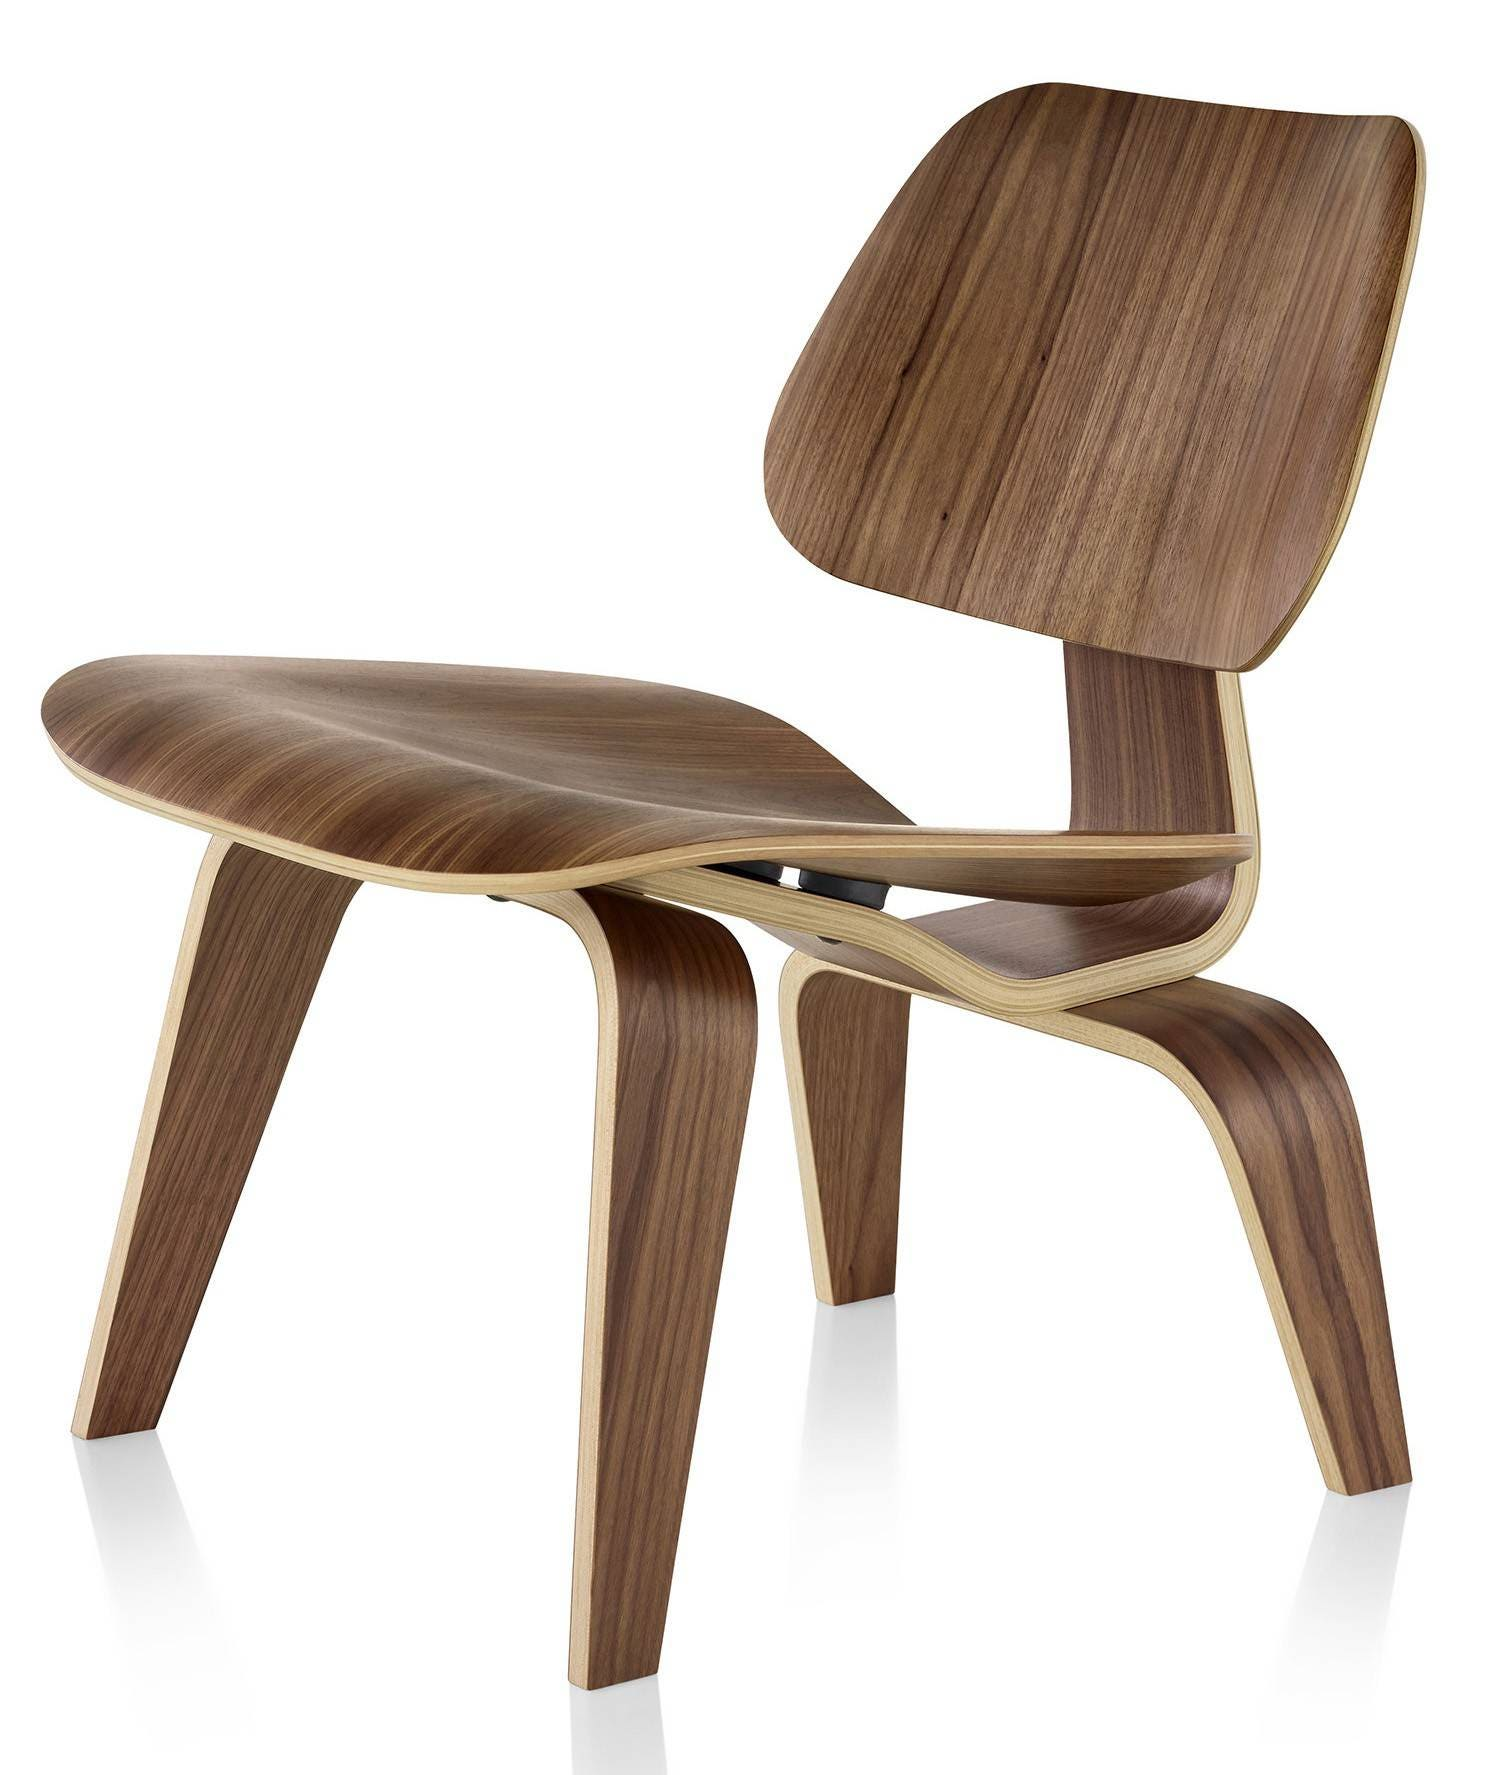 Exceptionnel ... Lounge Chair   Wood Legs. 1